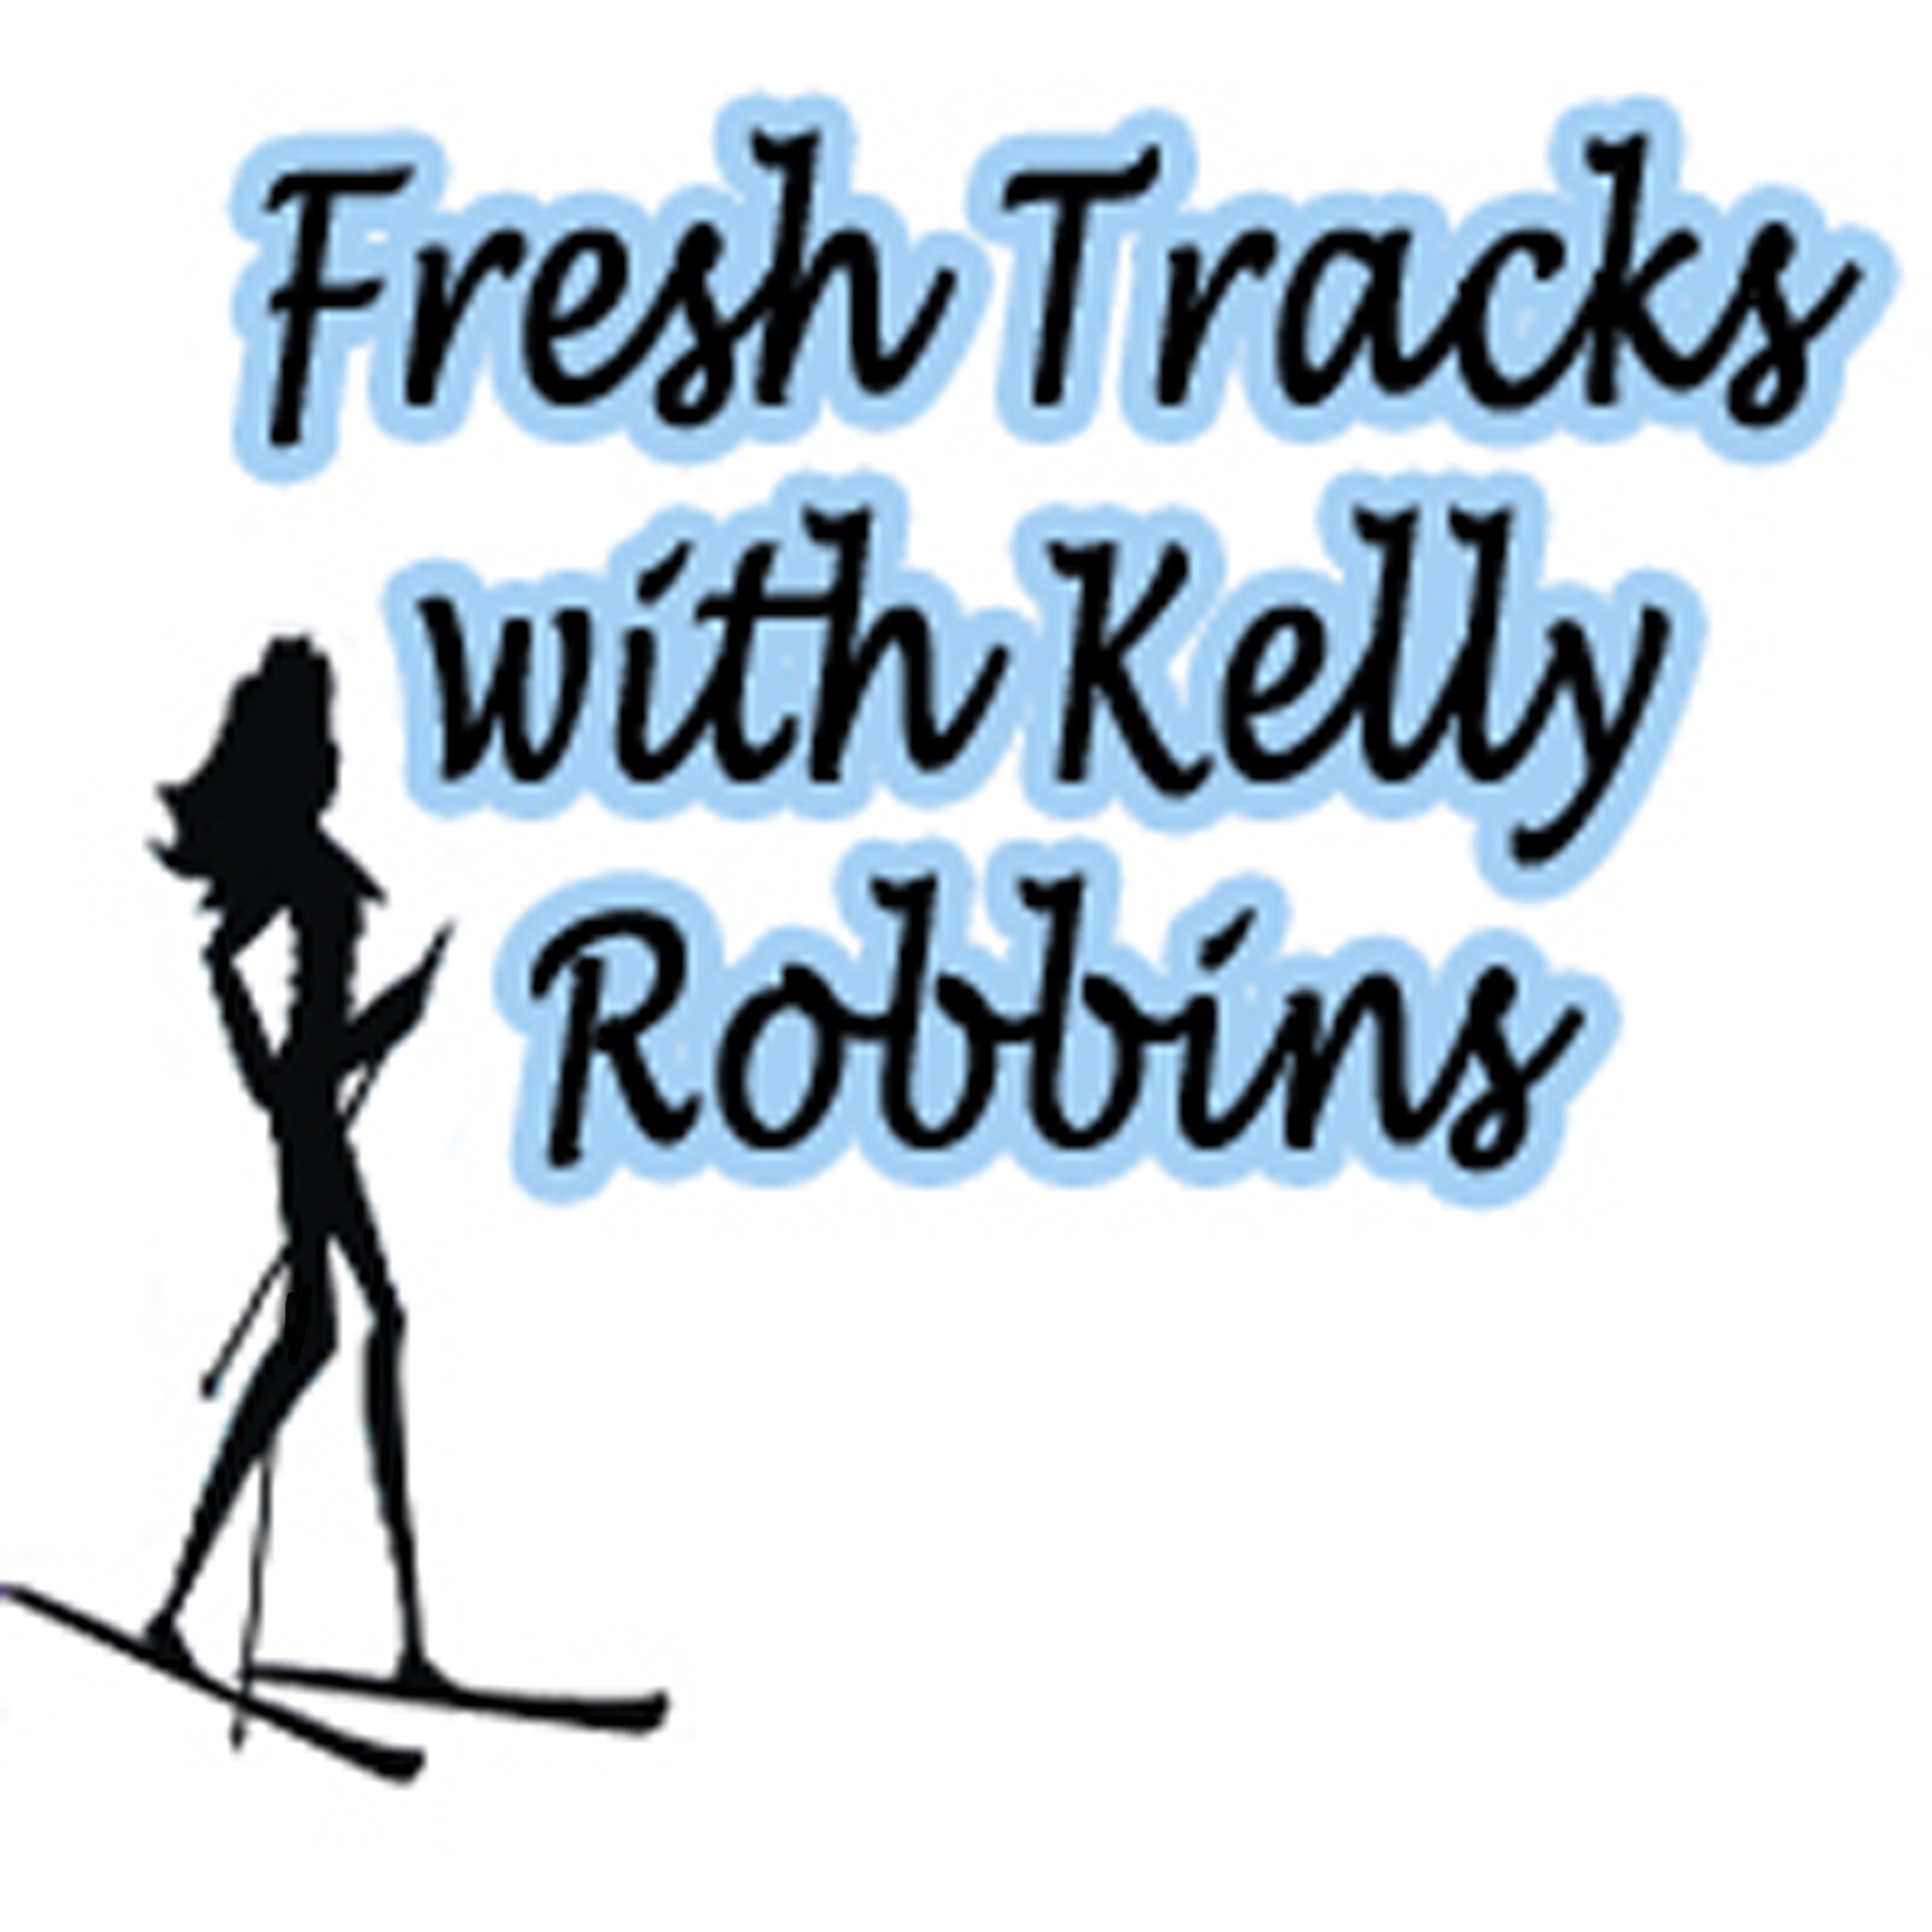 How to subscribe to Fresh Tracks with Kelly Robbins.